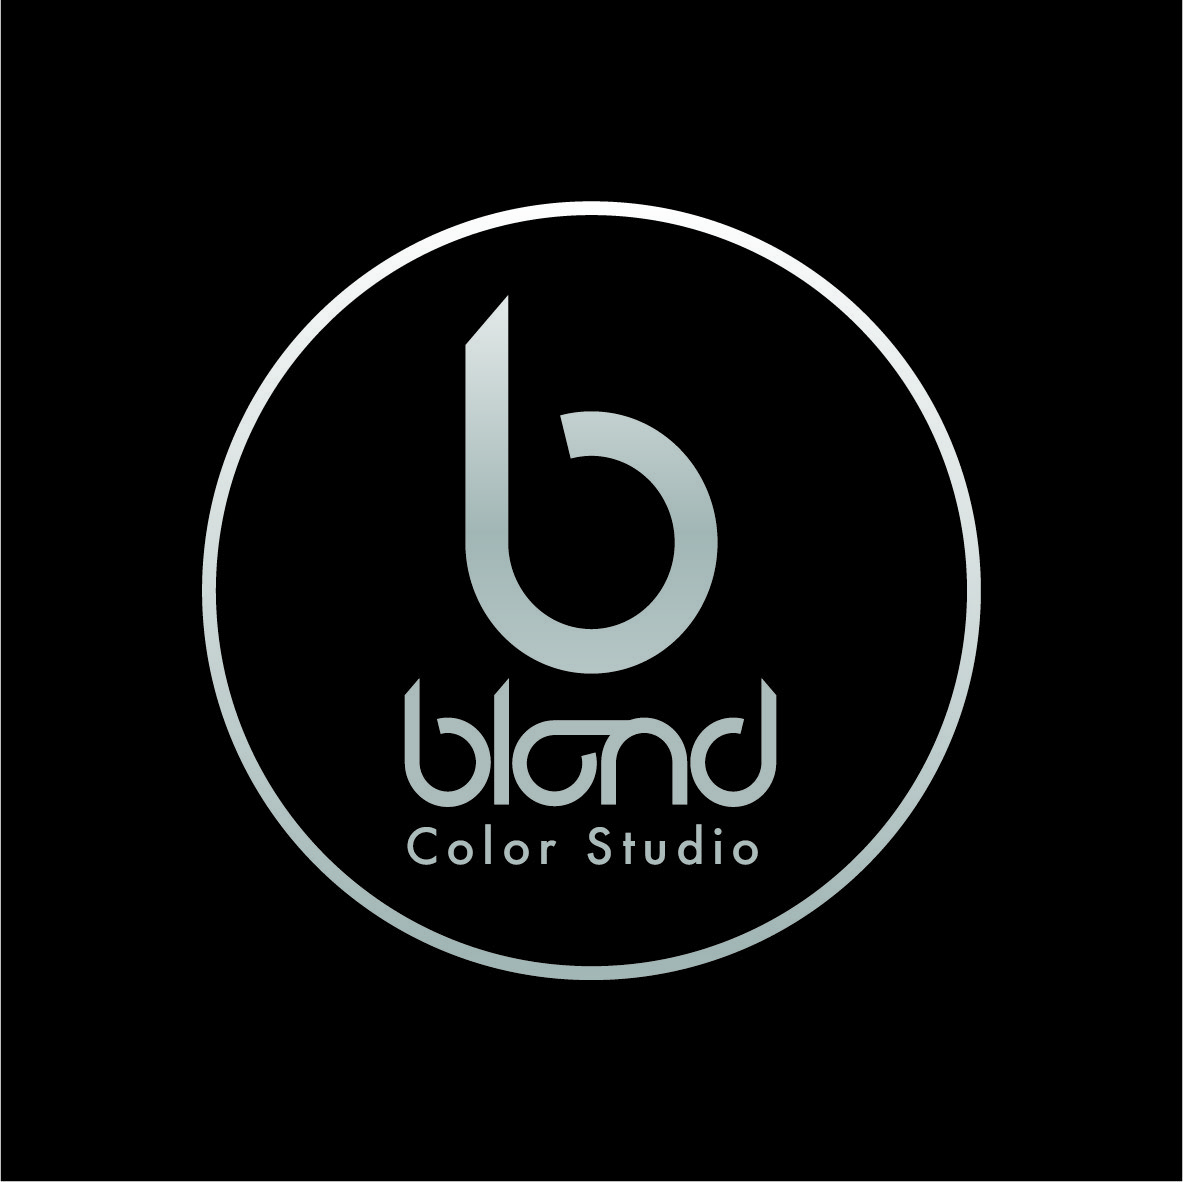 Blond Color Studio